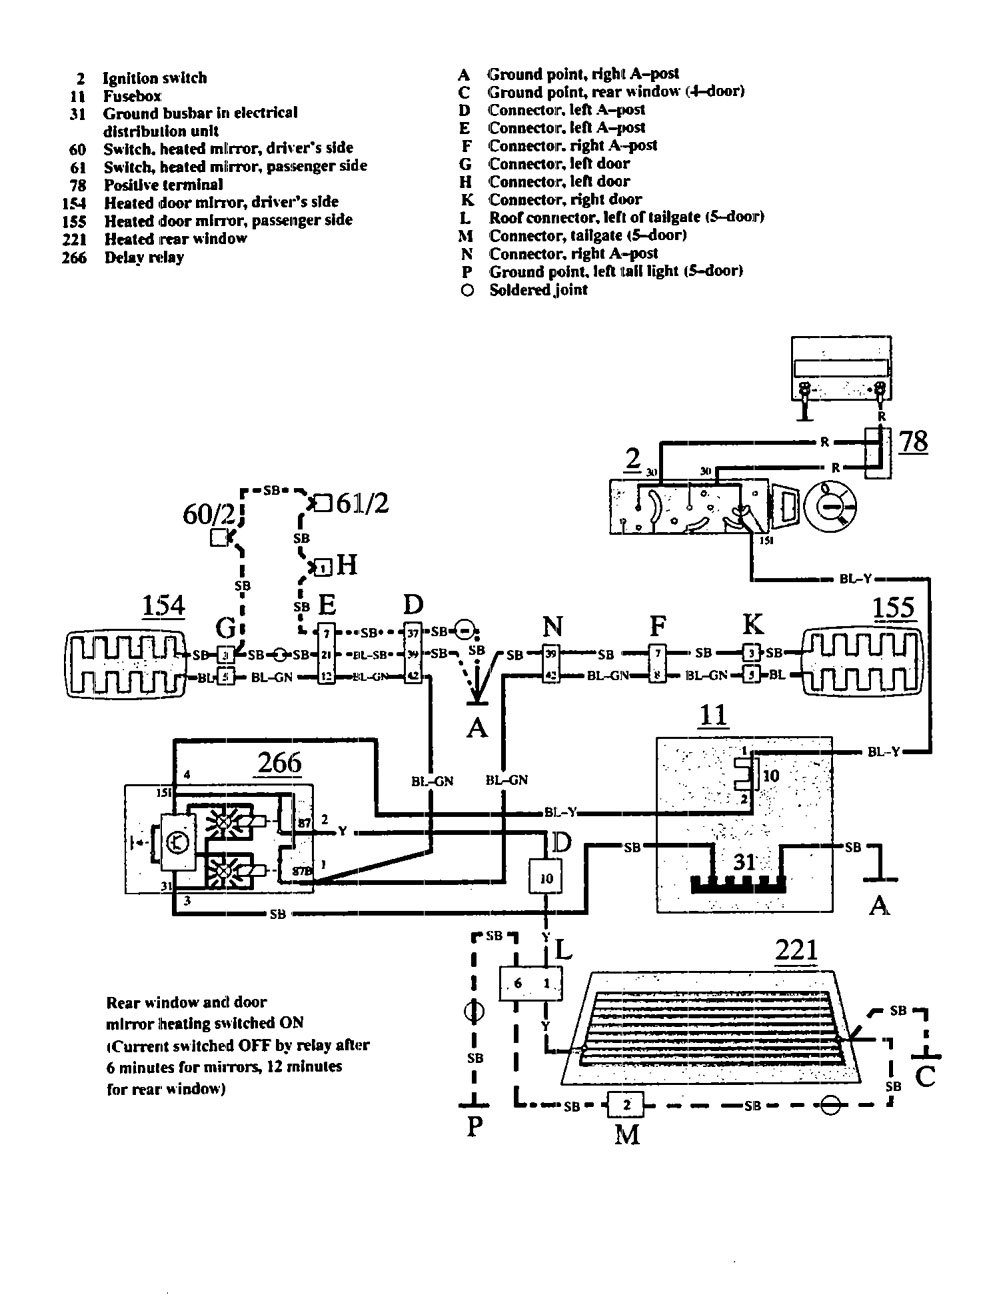 Volvo Wiring Diagrams 940 Electrical Diagram Schematics 91 240 1995 Radio 93 Troubleshooting